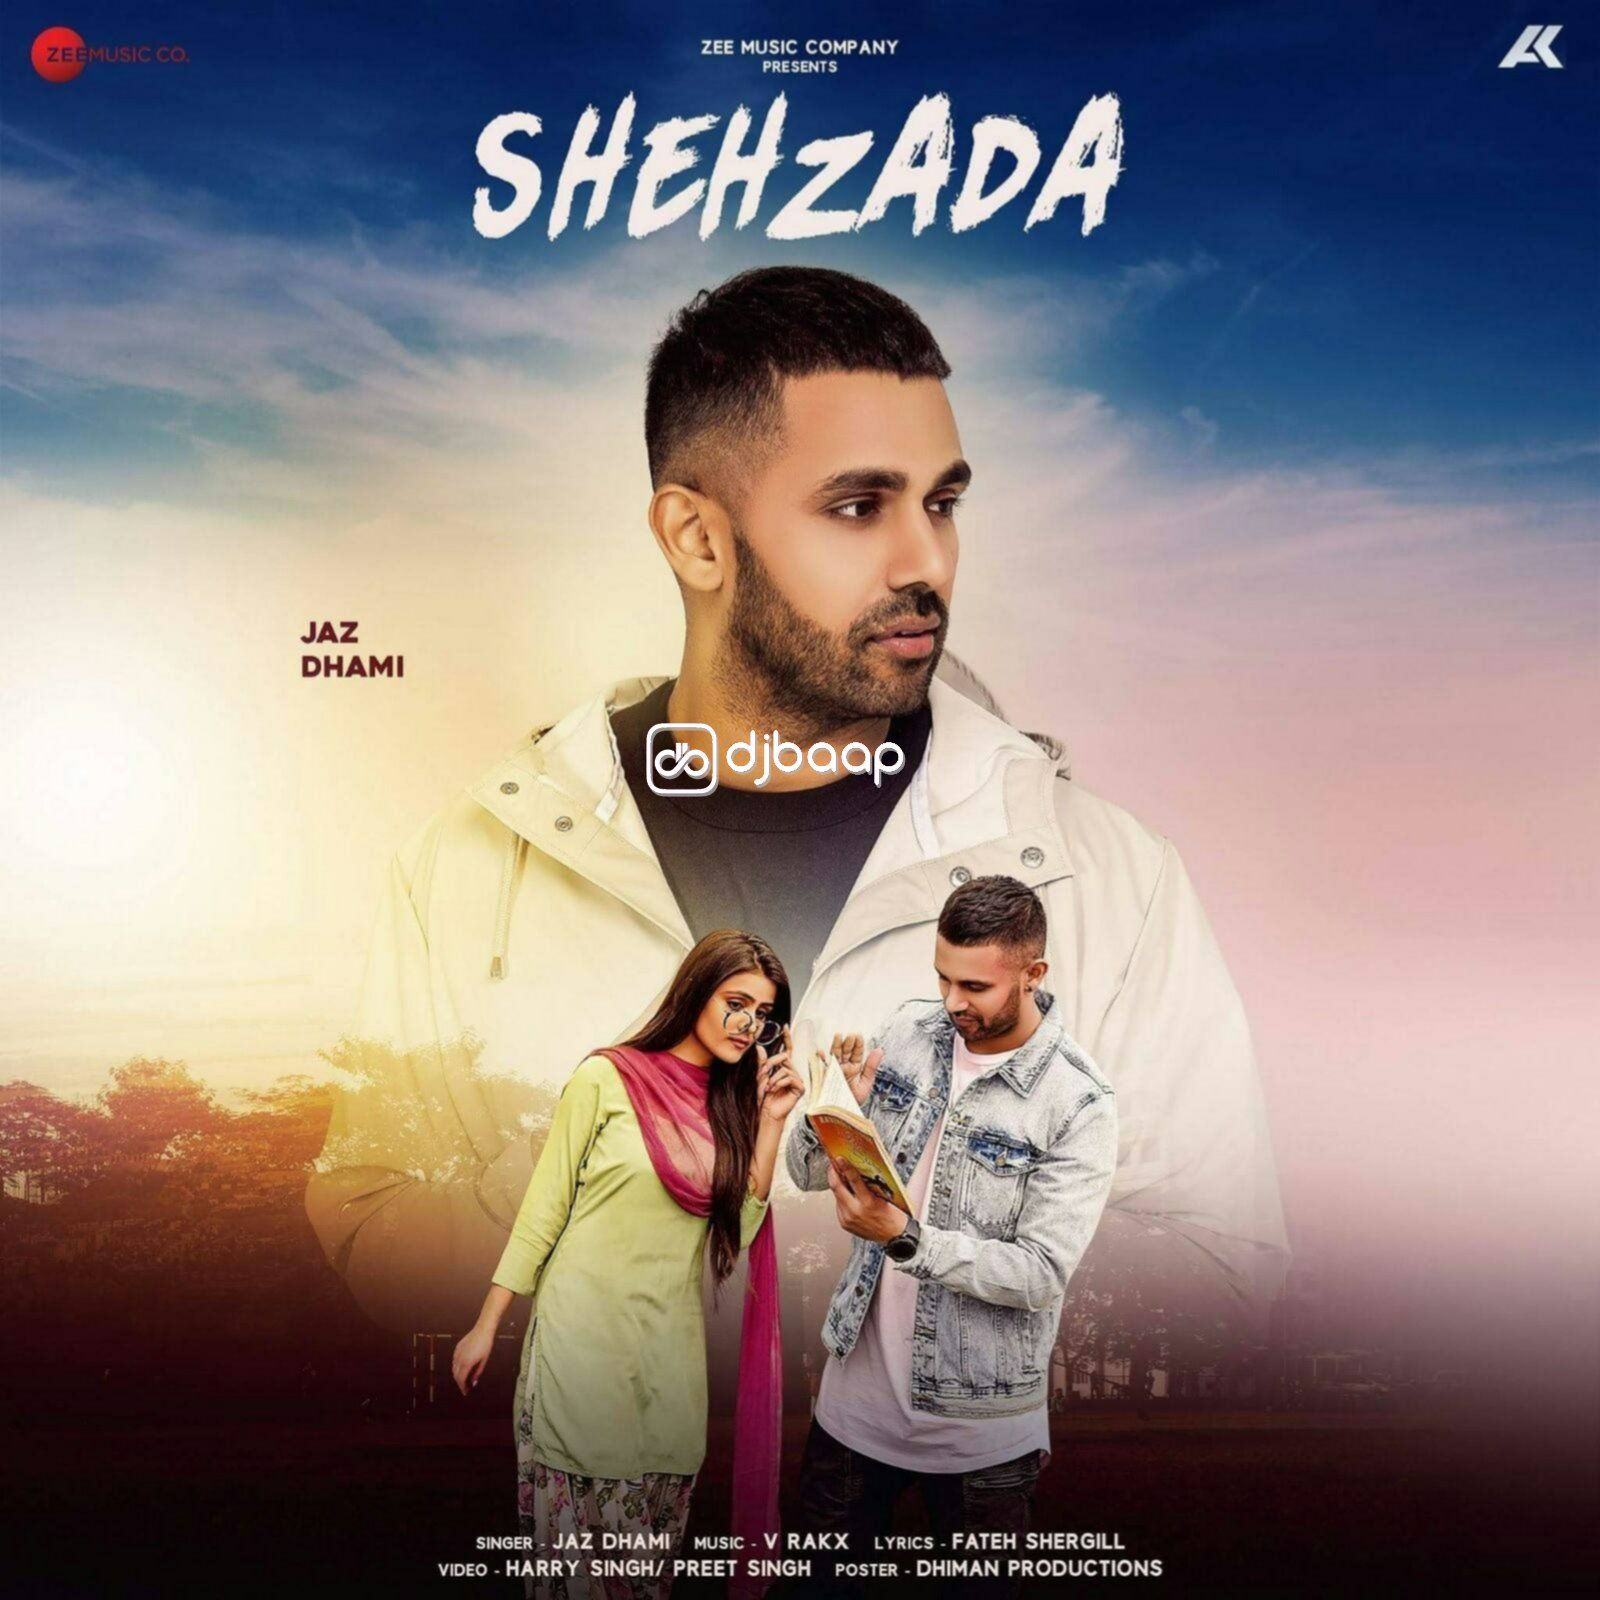 Shehzada mp3 song belongs new punjabi songs, Shehzada by